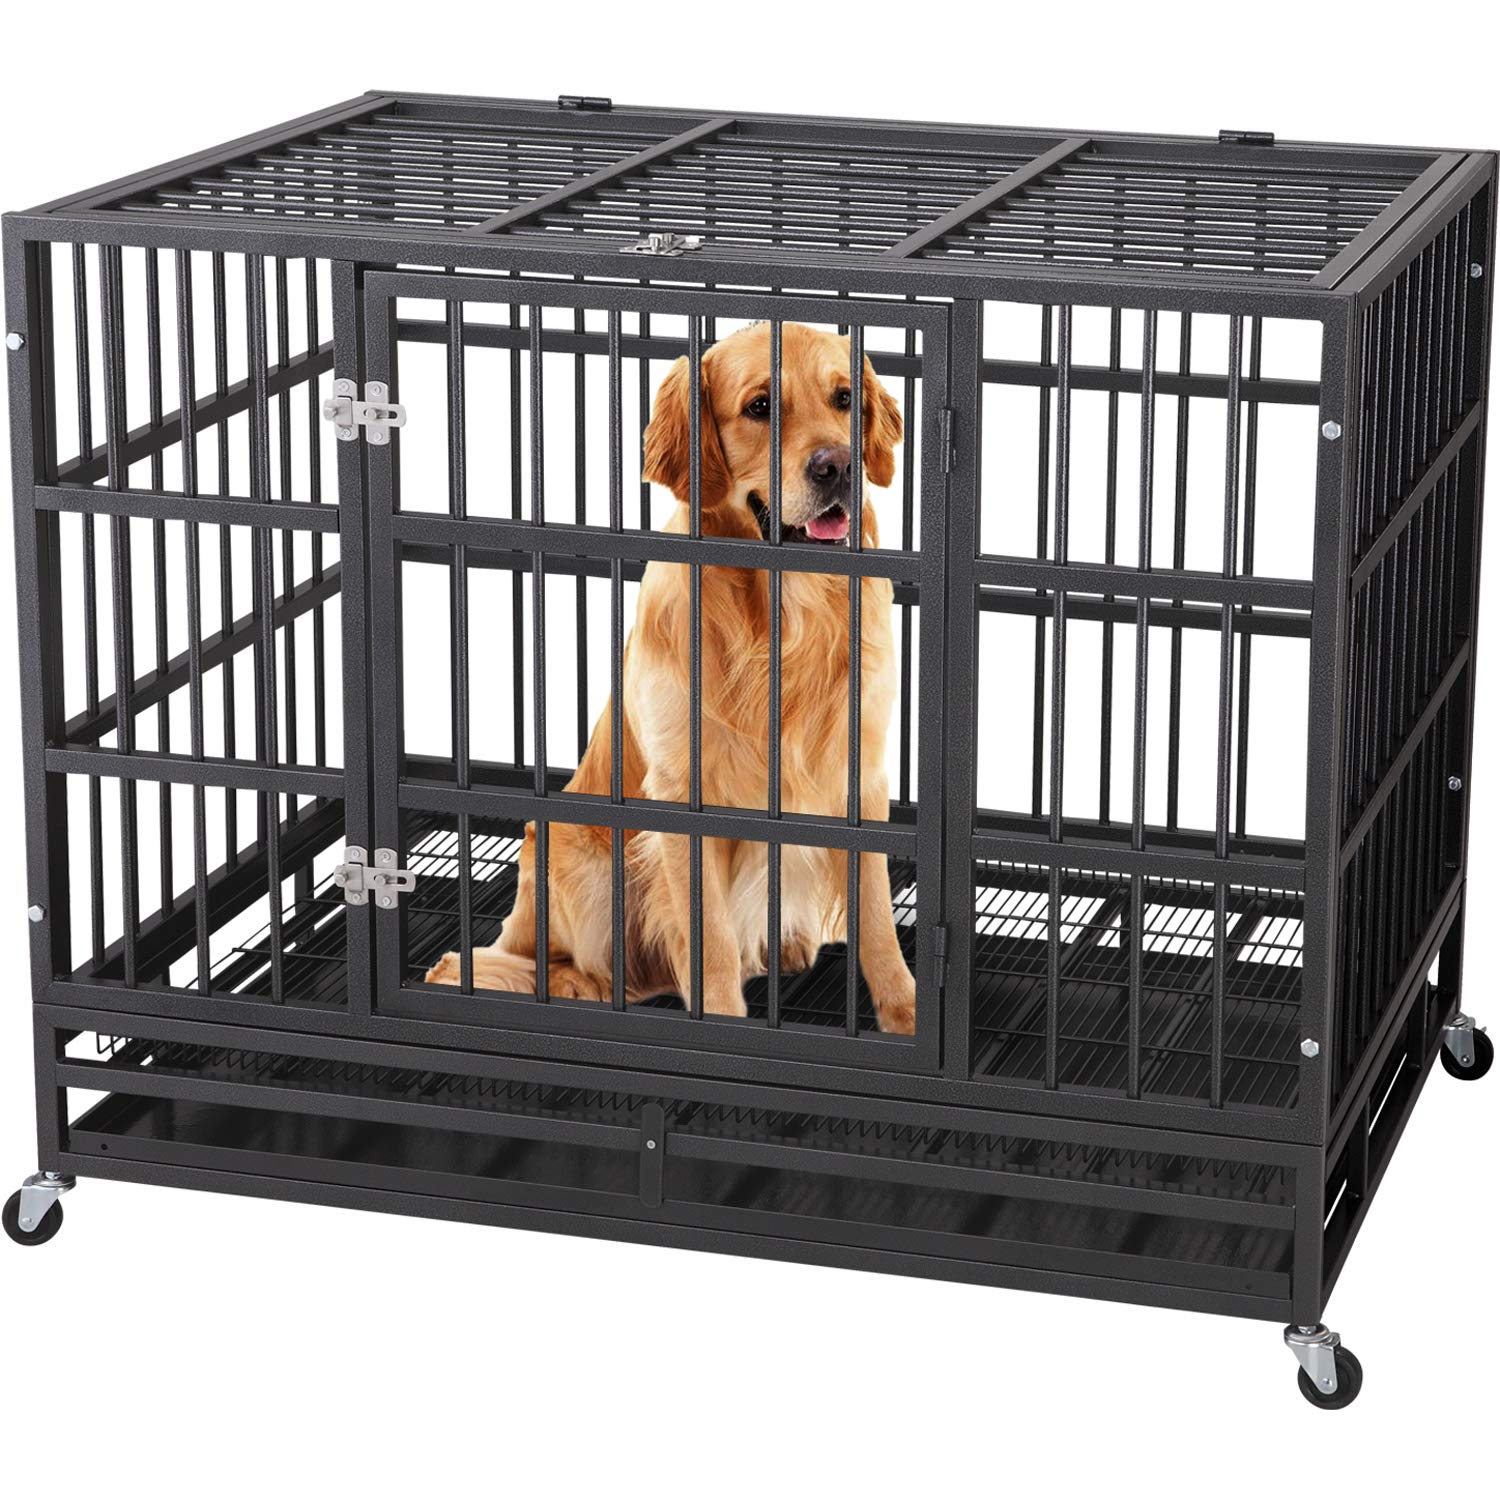 ITORI 48'' Heavy Duty Metal Dog Cage Strong Kennel Crate and Playpen for Training Large Dog and Pet Indoor and Outdoor with Double Doors & Locks Design Included Lockable Wheels and Removable Tray